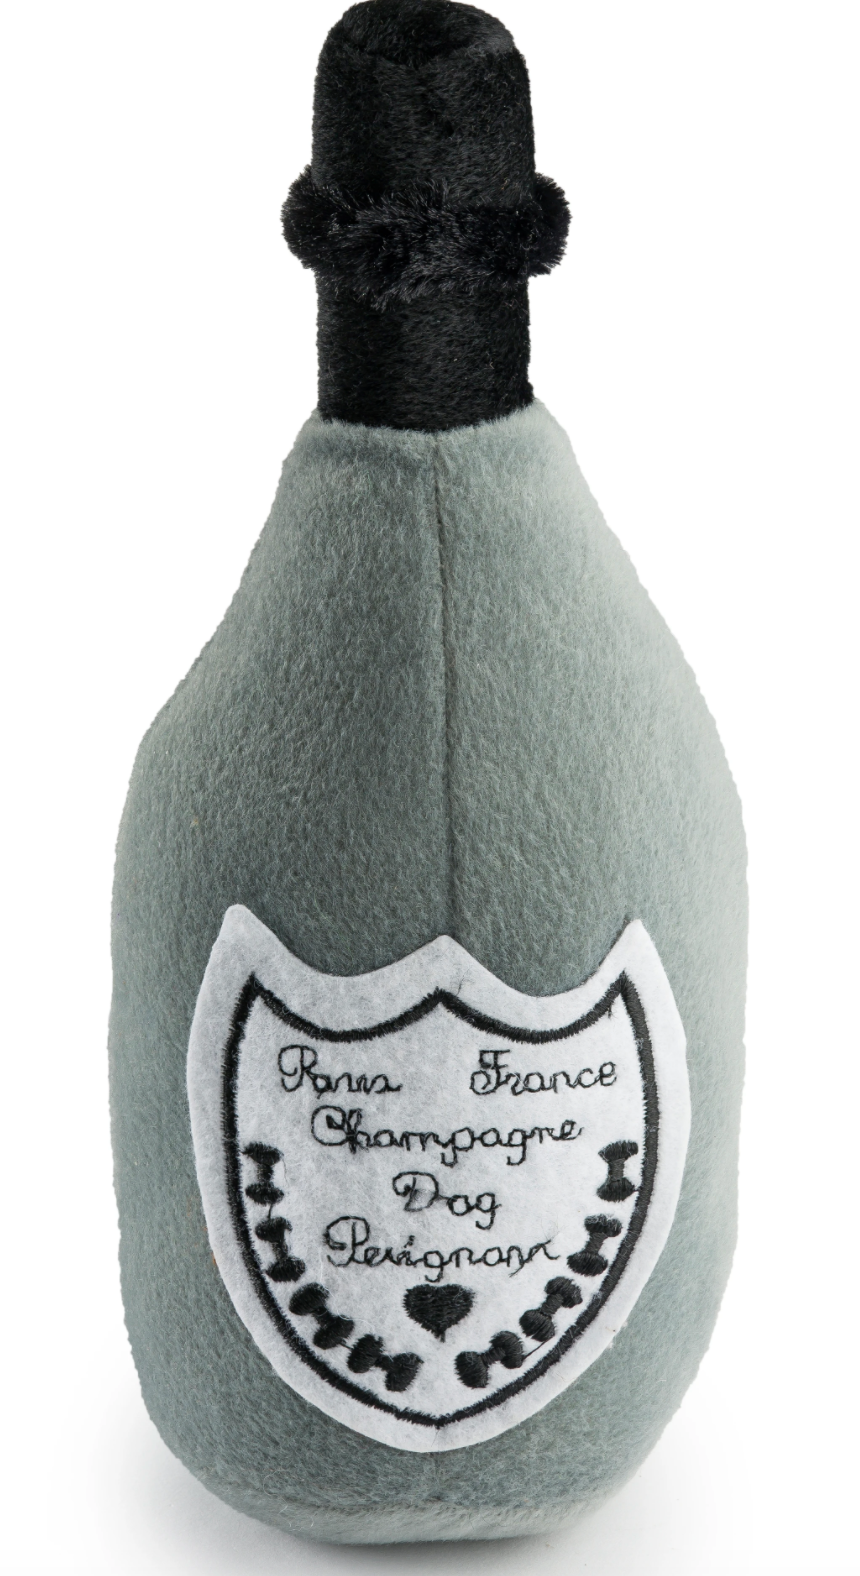 Dog Perignonn Champagne Plush Dog Toy